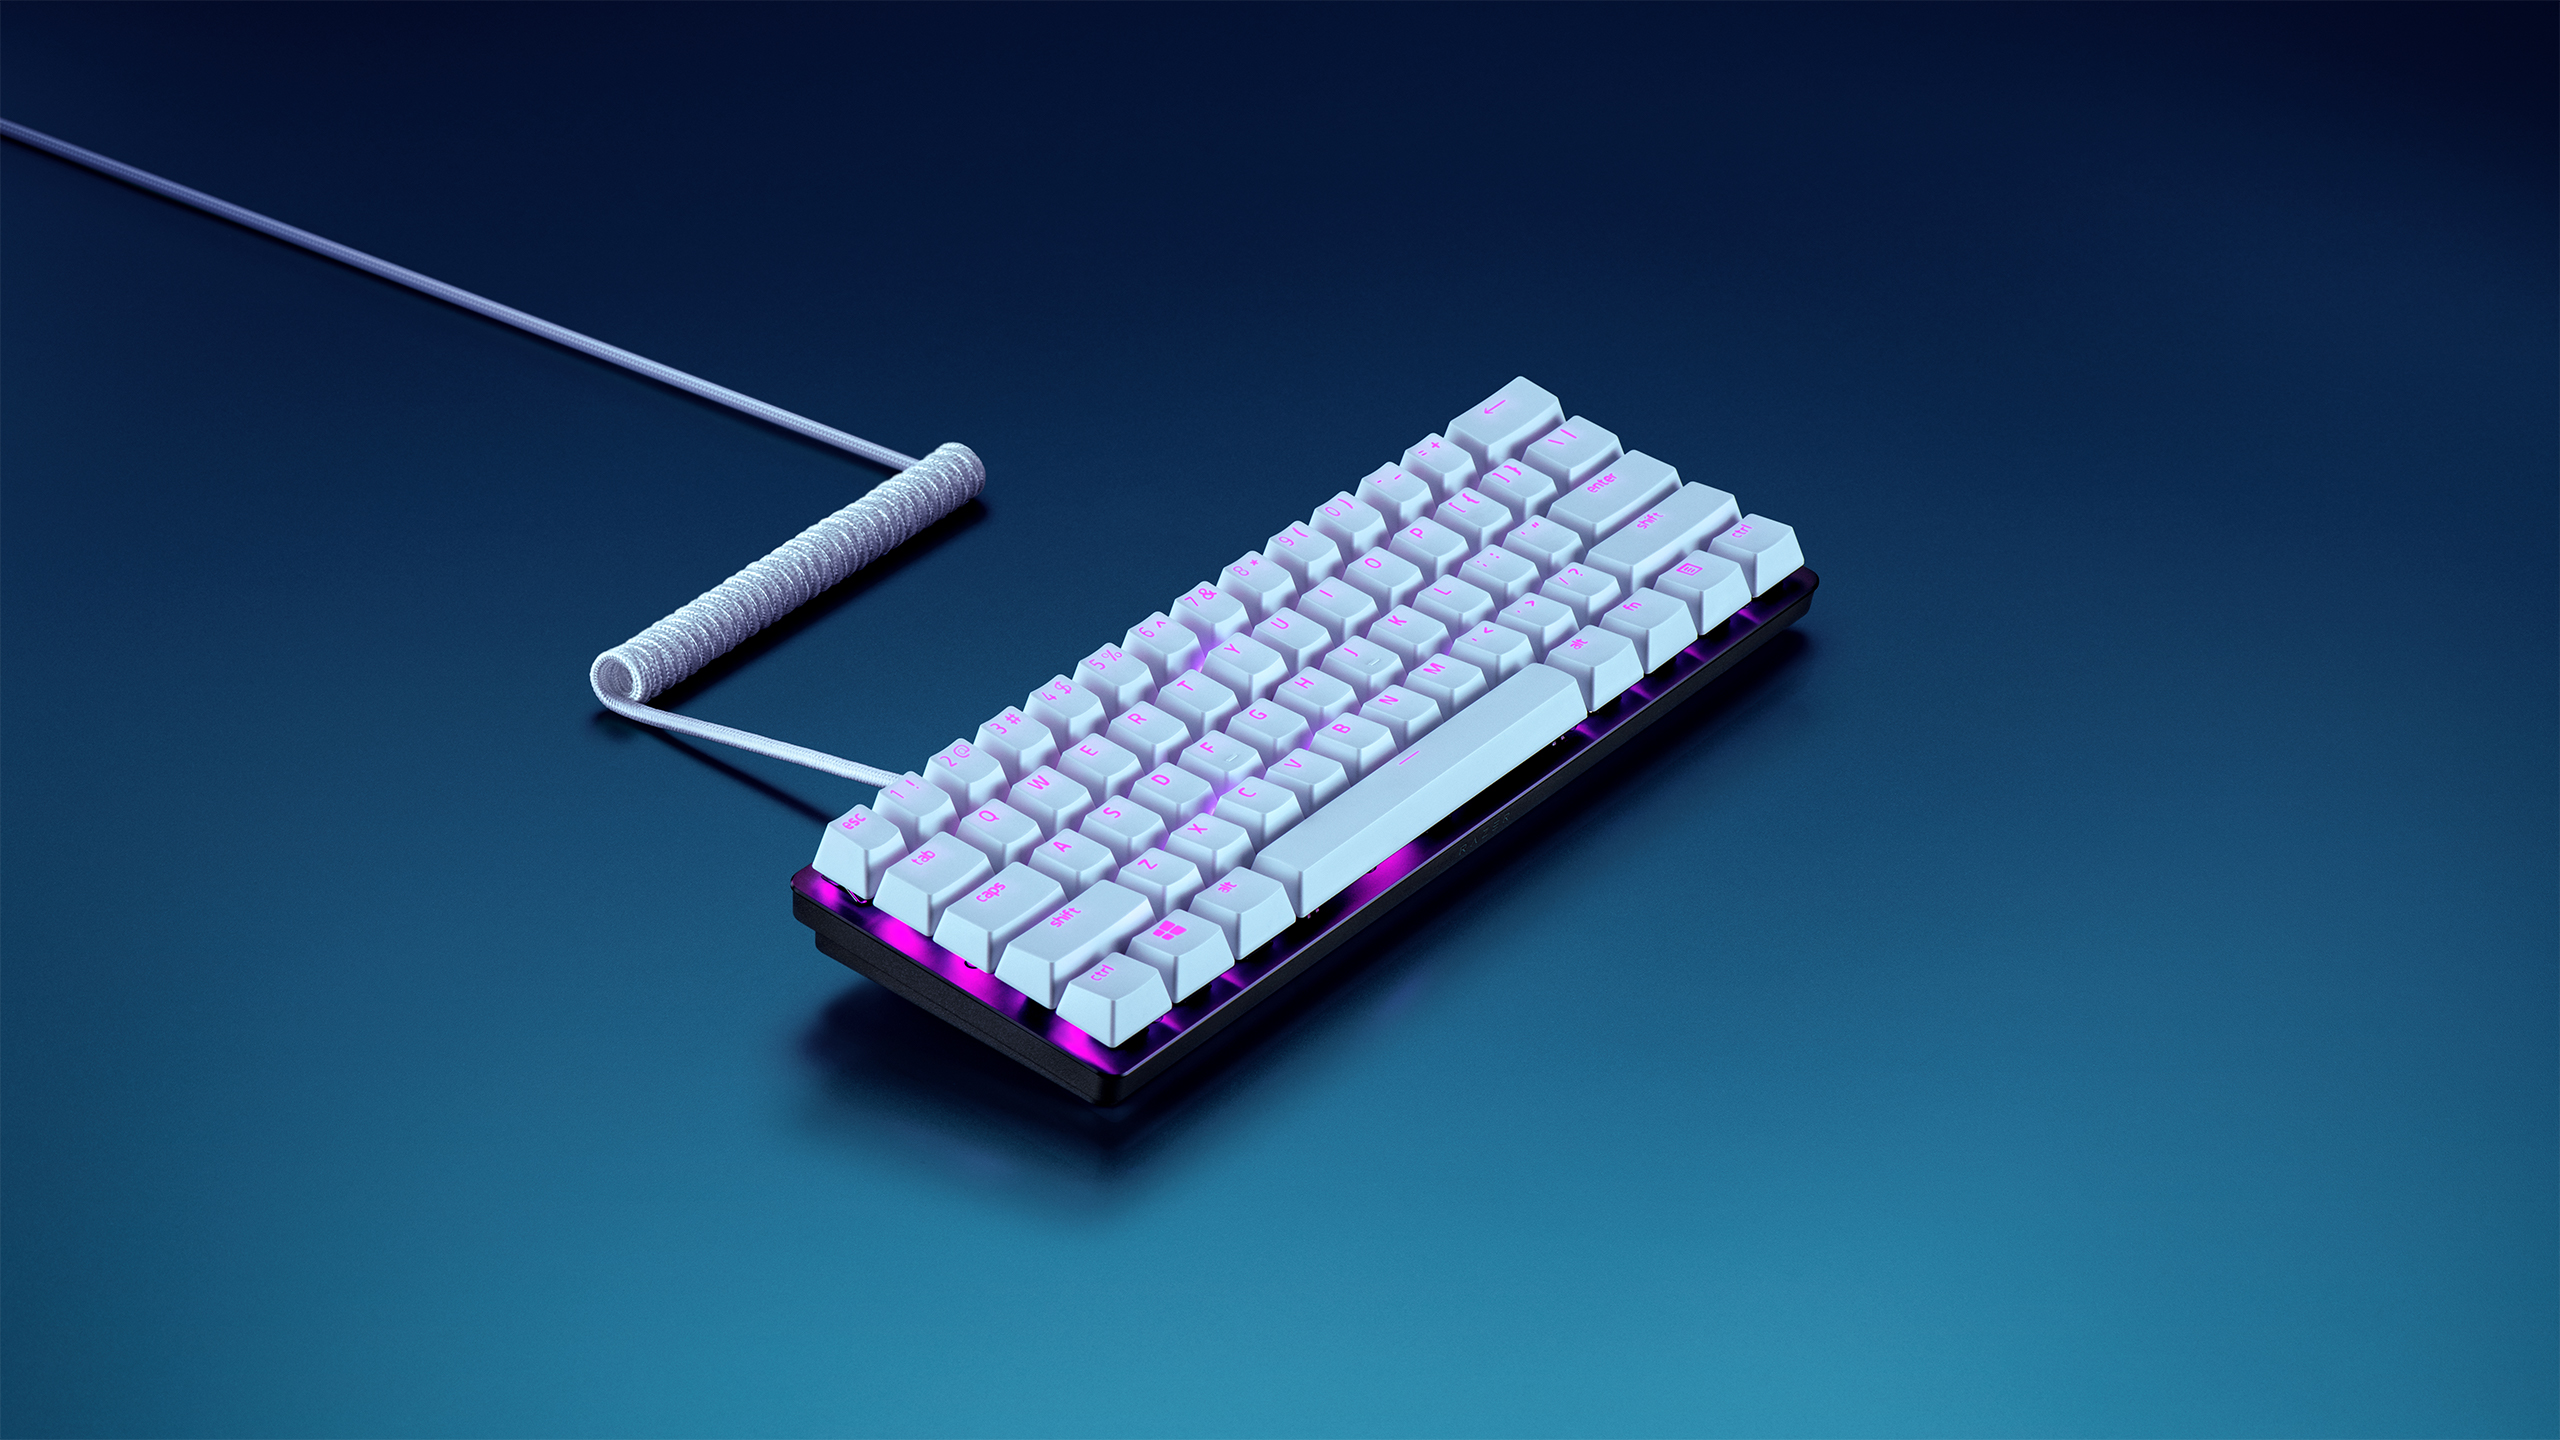 Razer PBT keycaps with coiled cable in multiple colour combinations